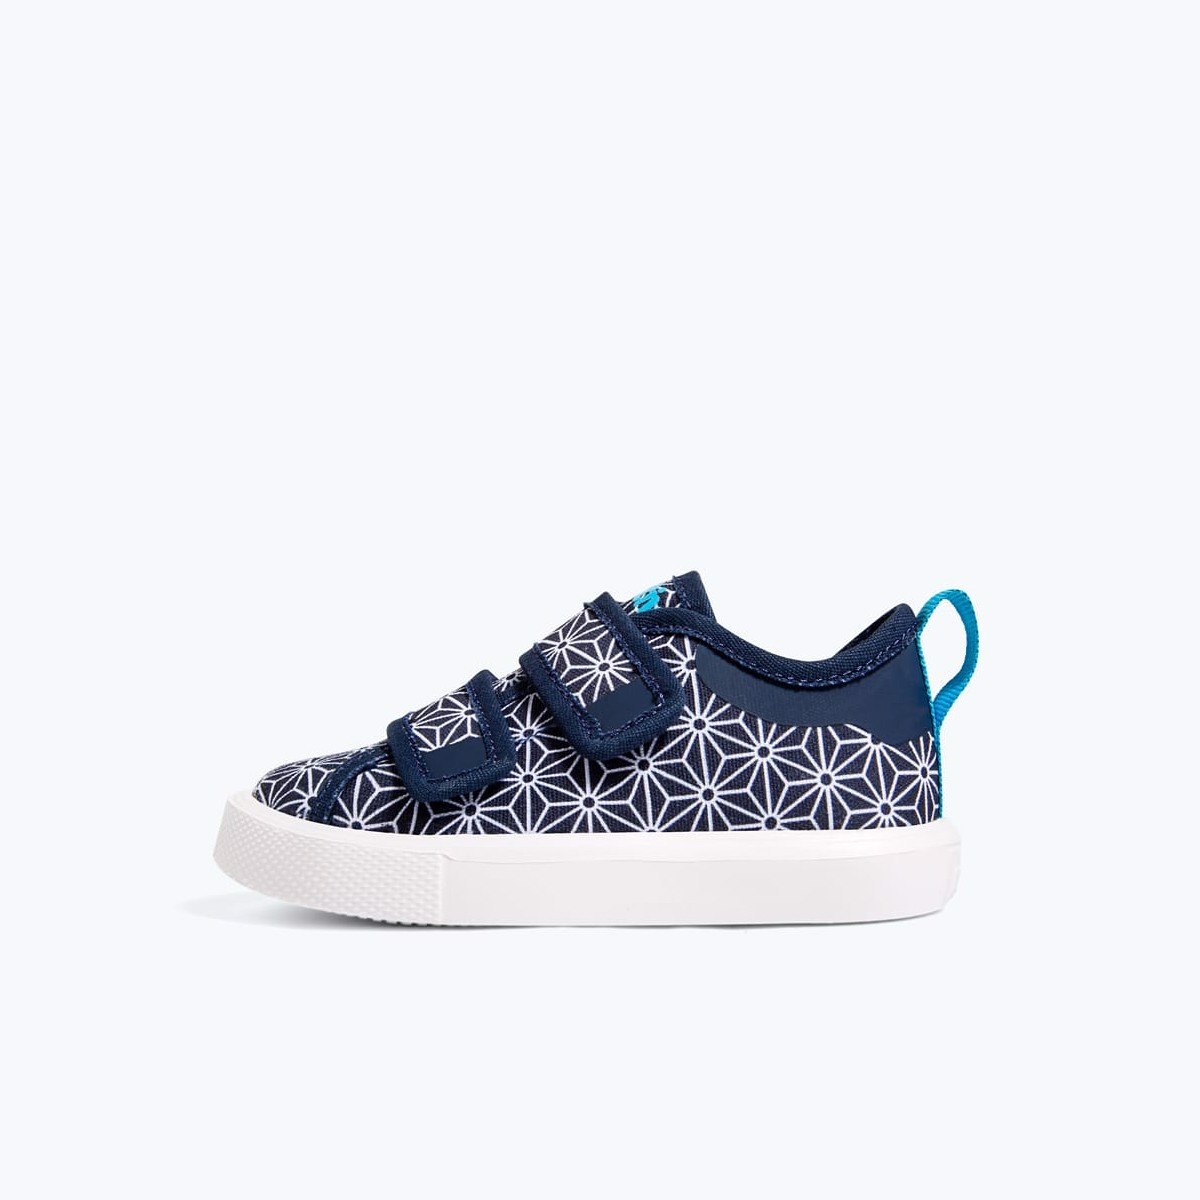 GIÀY NATIVE C MONACO VELCRO CANVAS CHILD (23104429) HYDRANGEA BLUE/ SHELL WHITE/ ORIGAMI